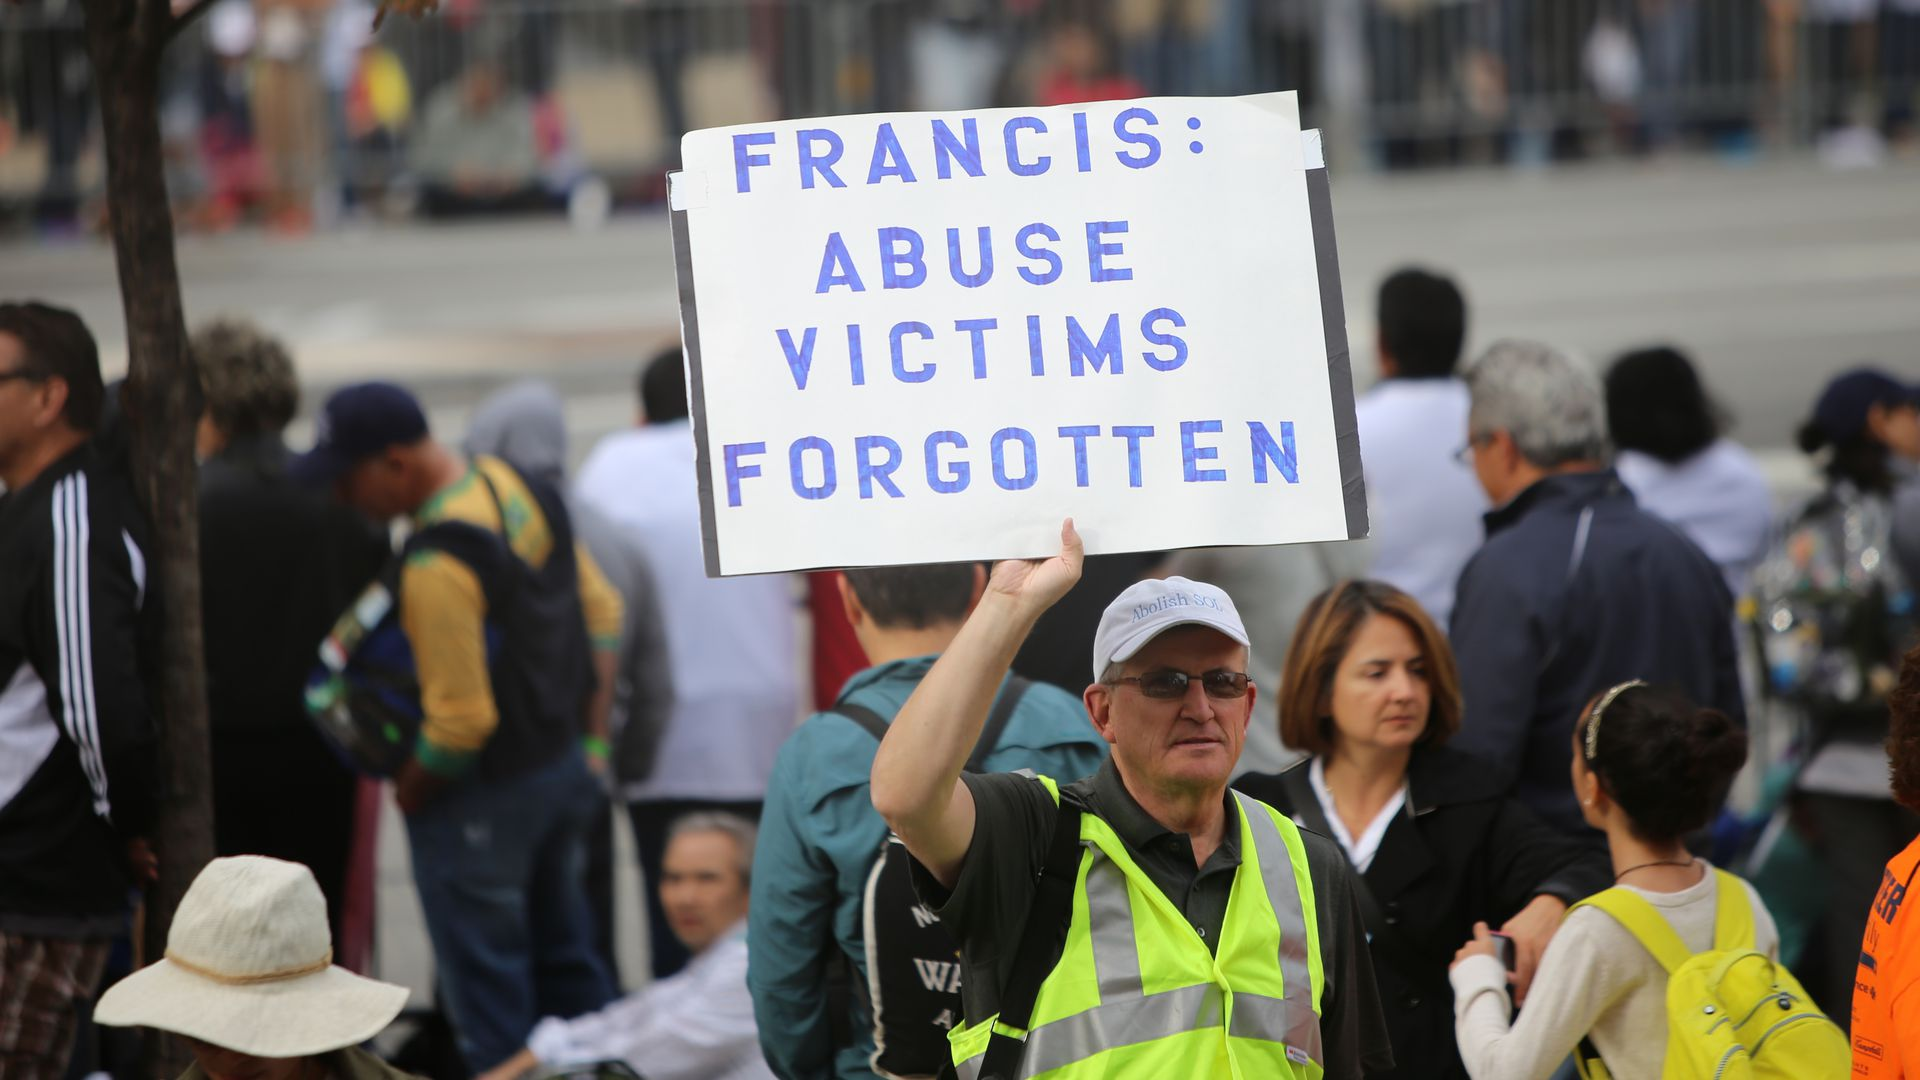 Man holding sign denouncing catholic church